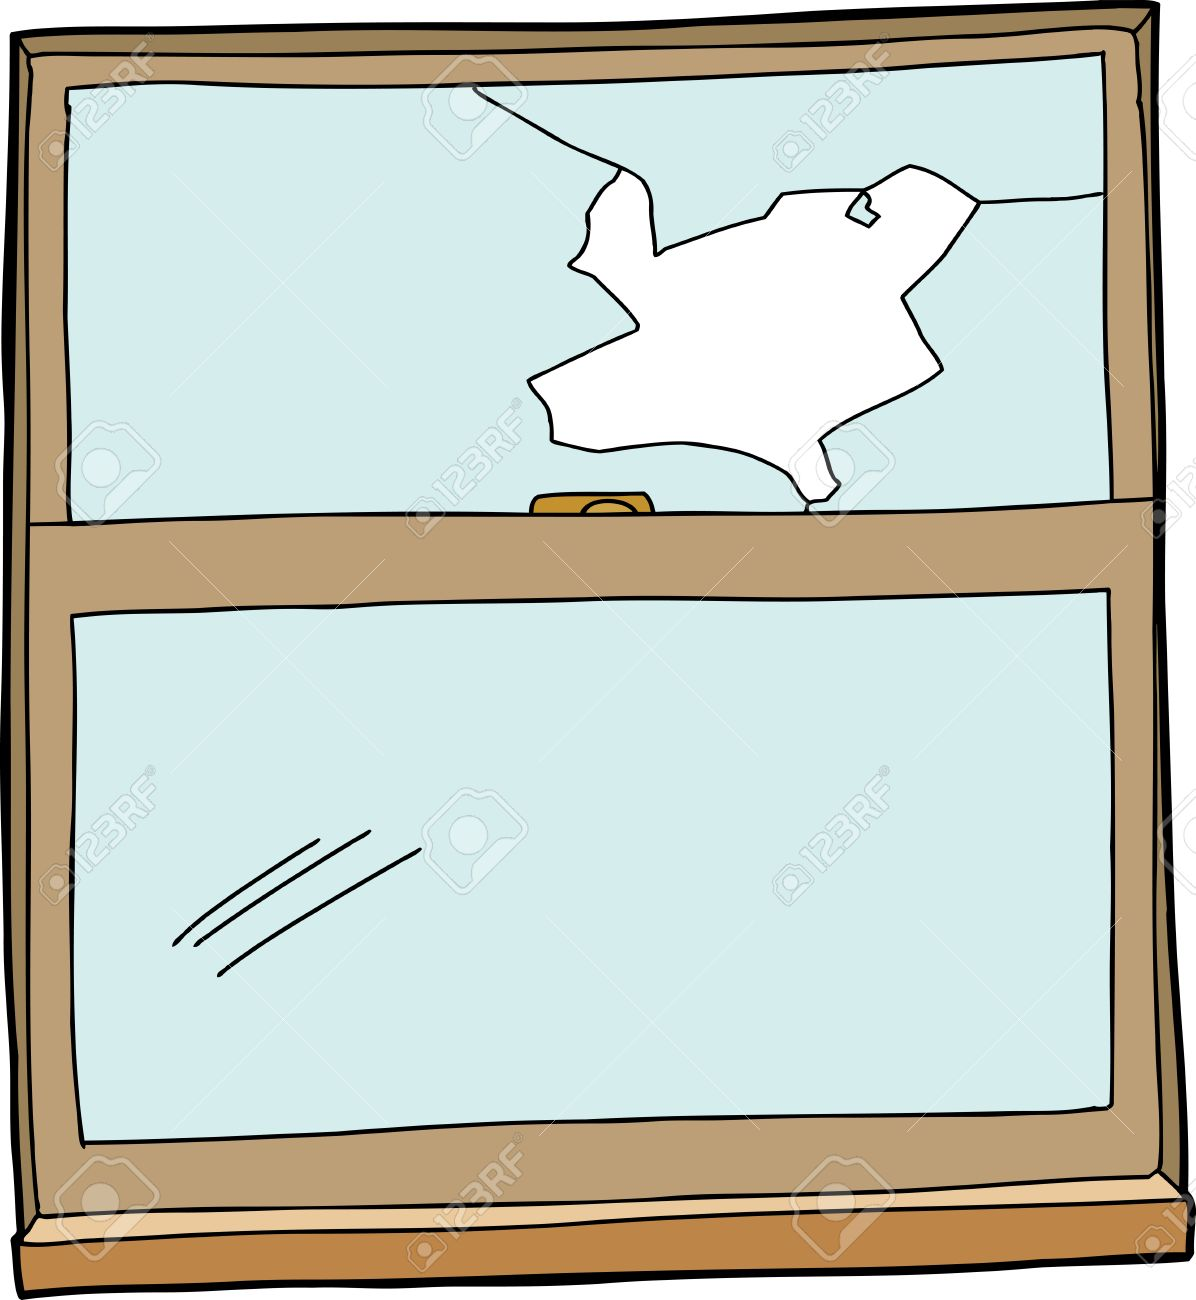 wooden window frame with broken glass pane royalty free cliparts rh 123rf com  window frame clipart picture